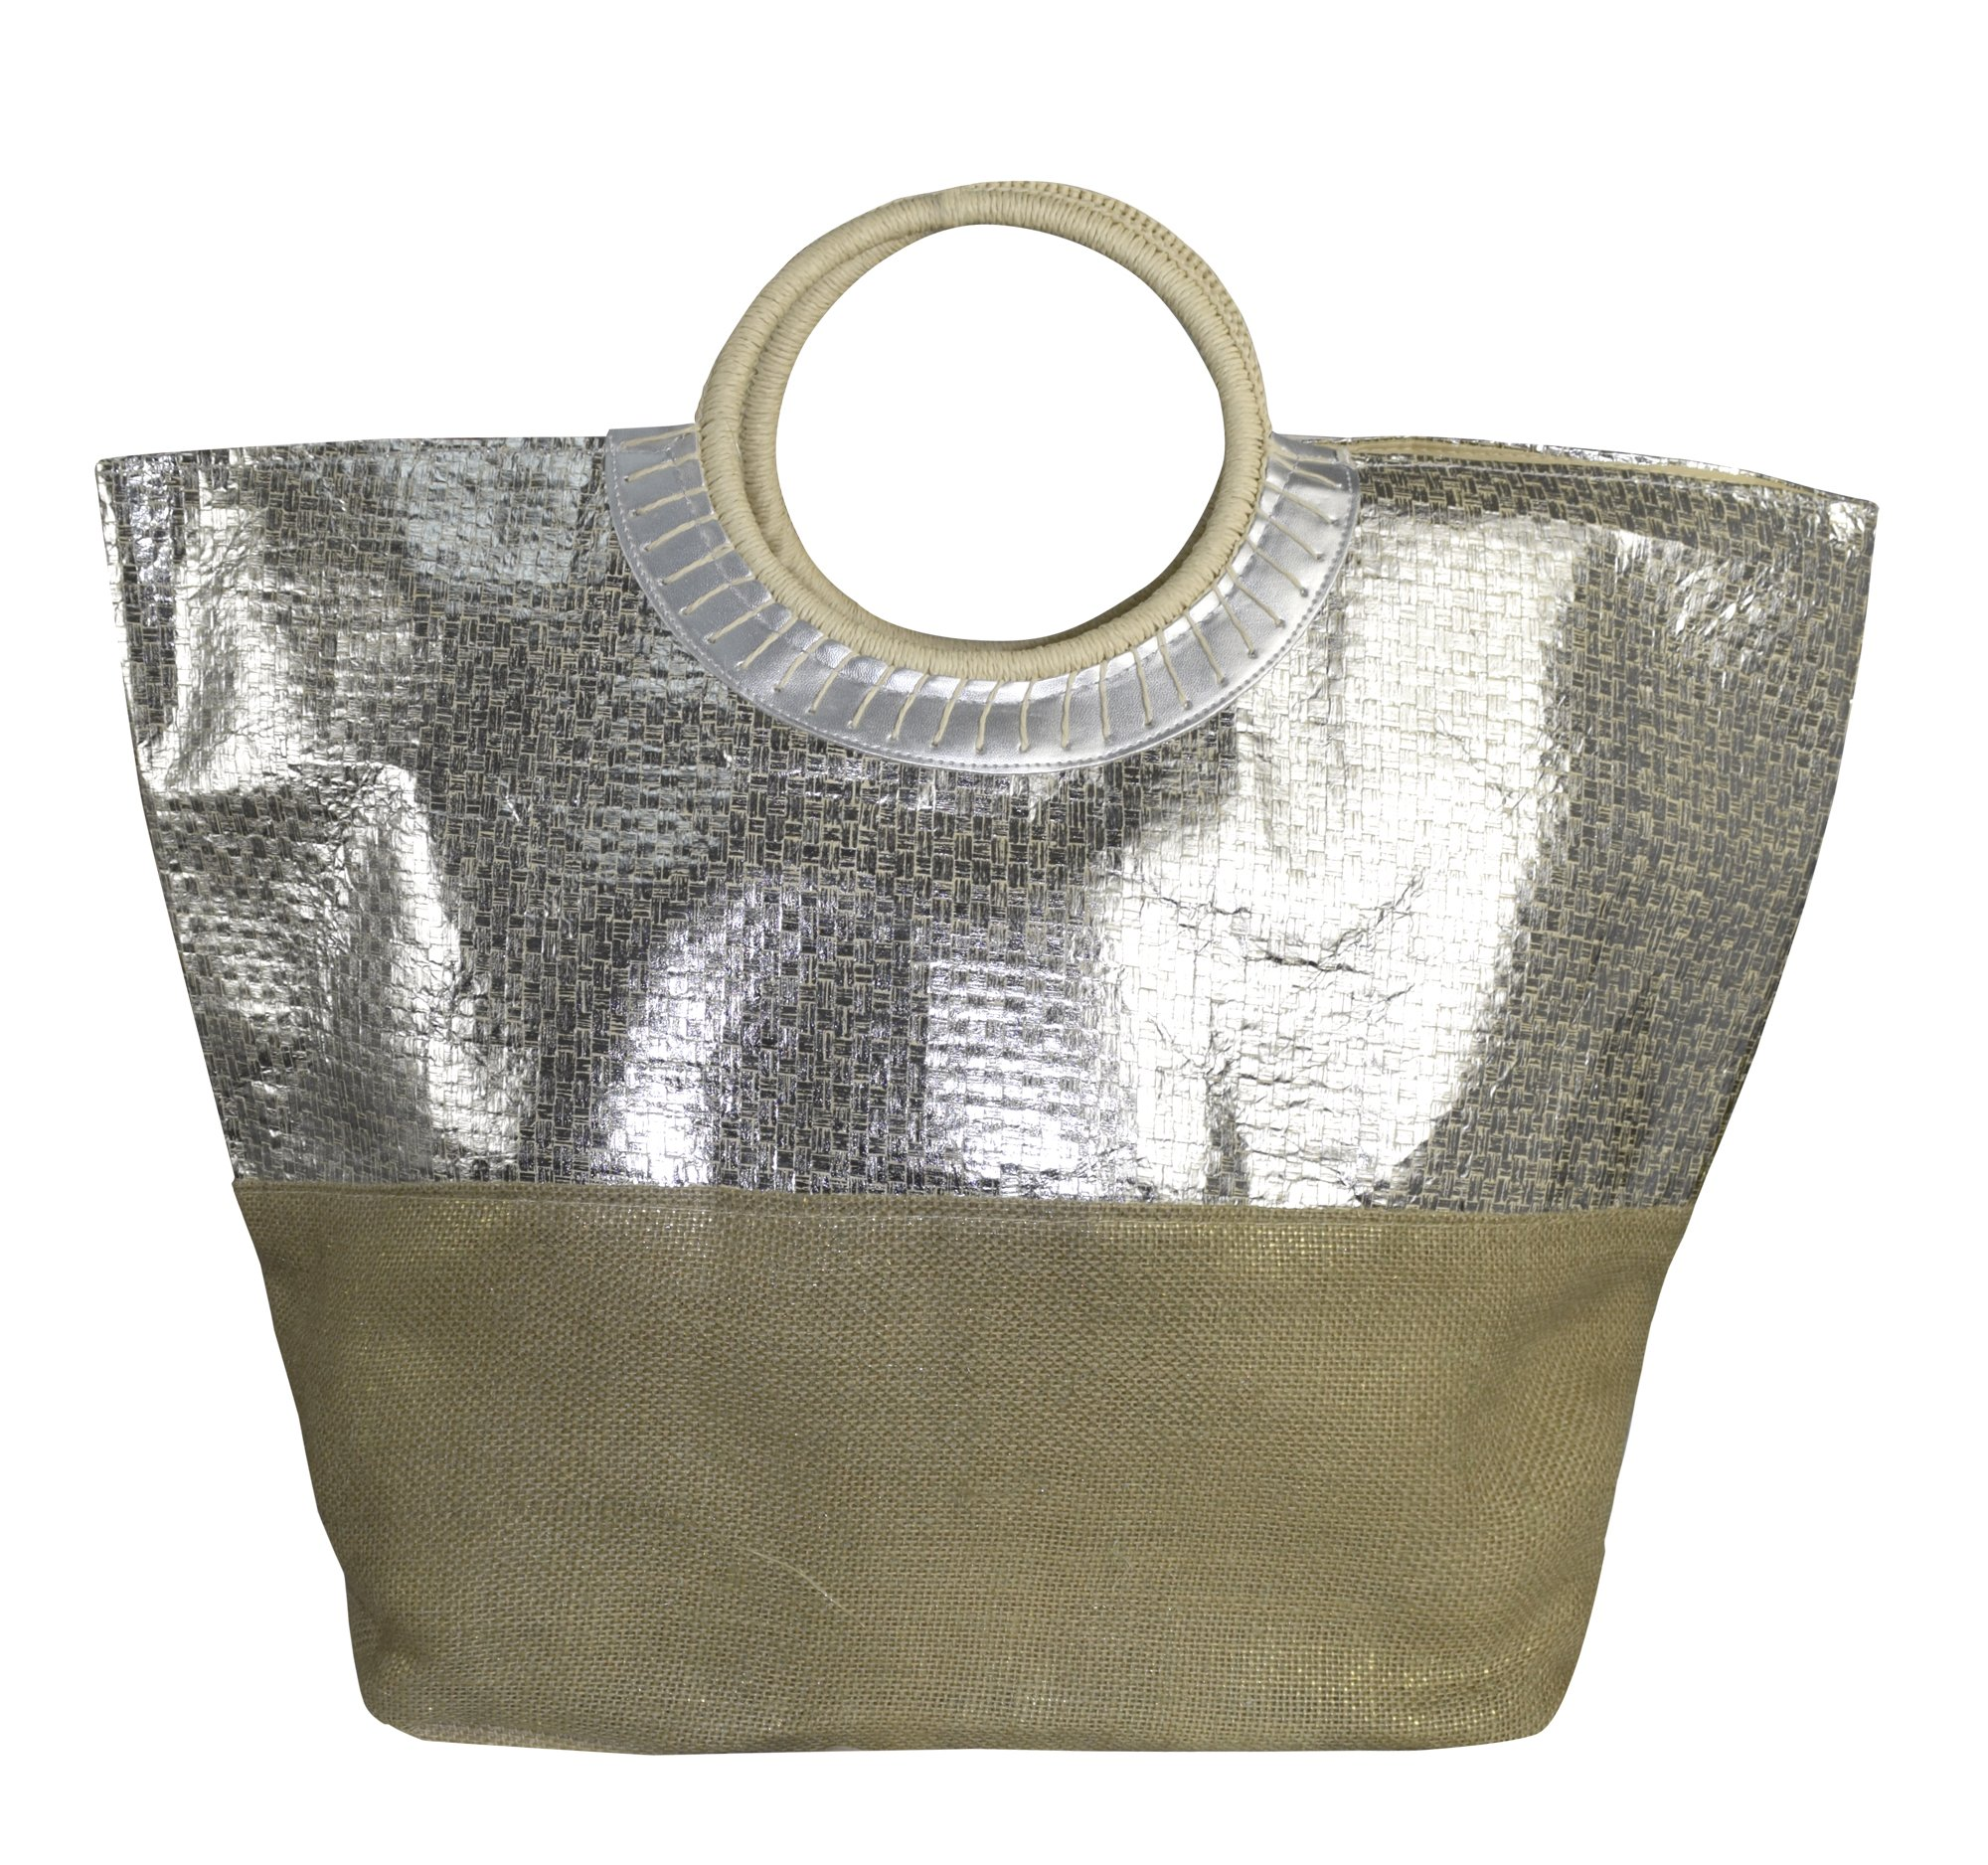 Peach Couture Gold Weave Large Travel Tote Hobo Handbags Shoulder Bags (Silver)